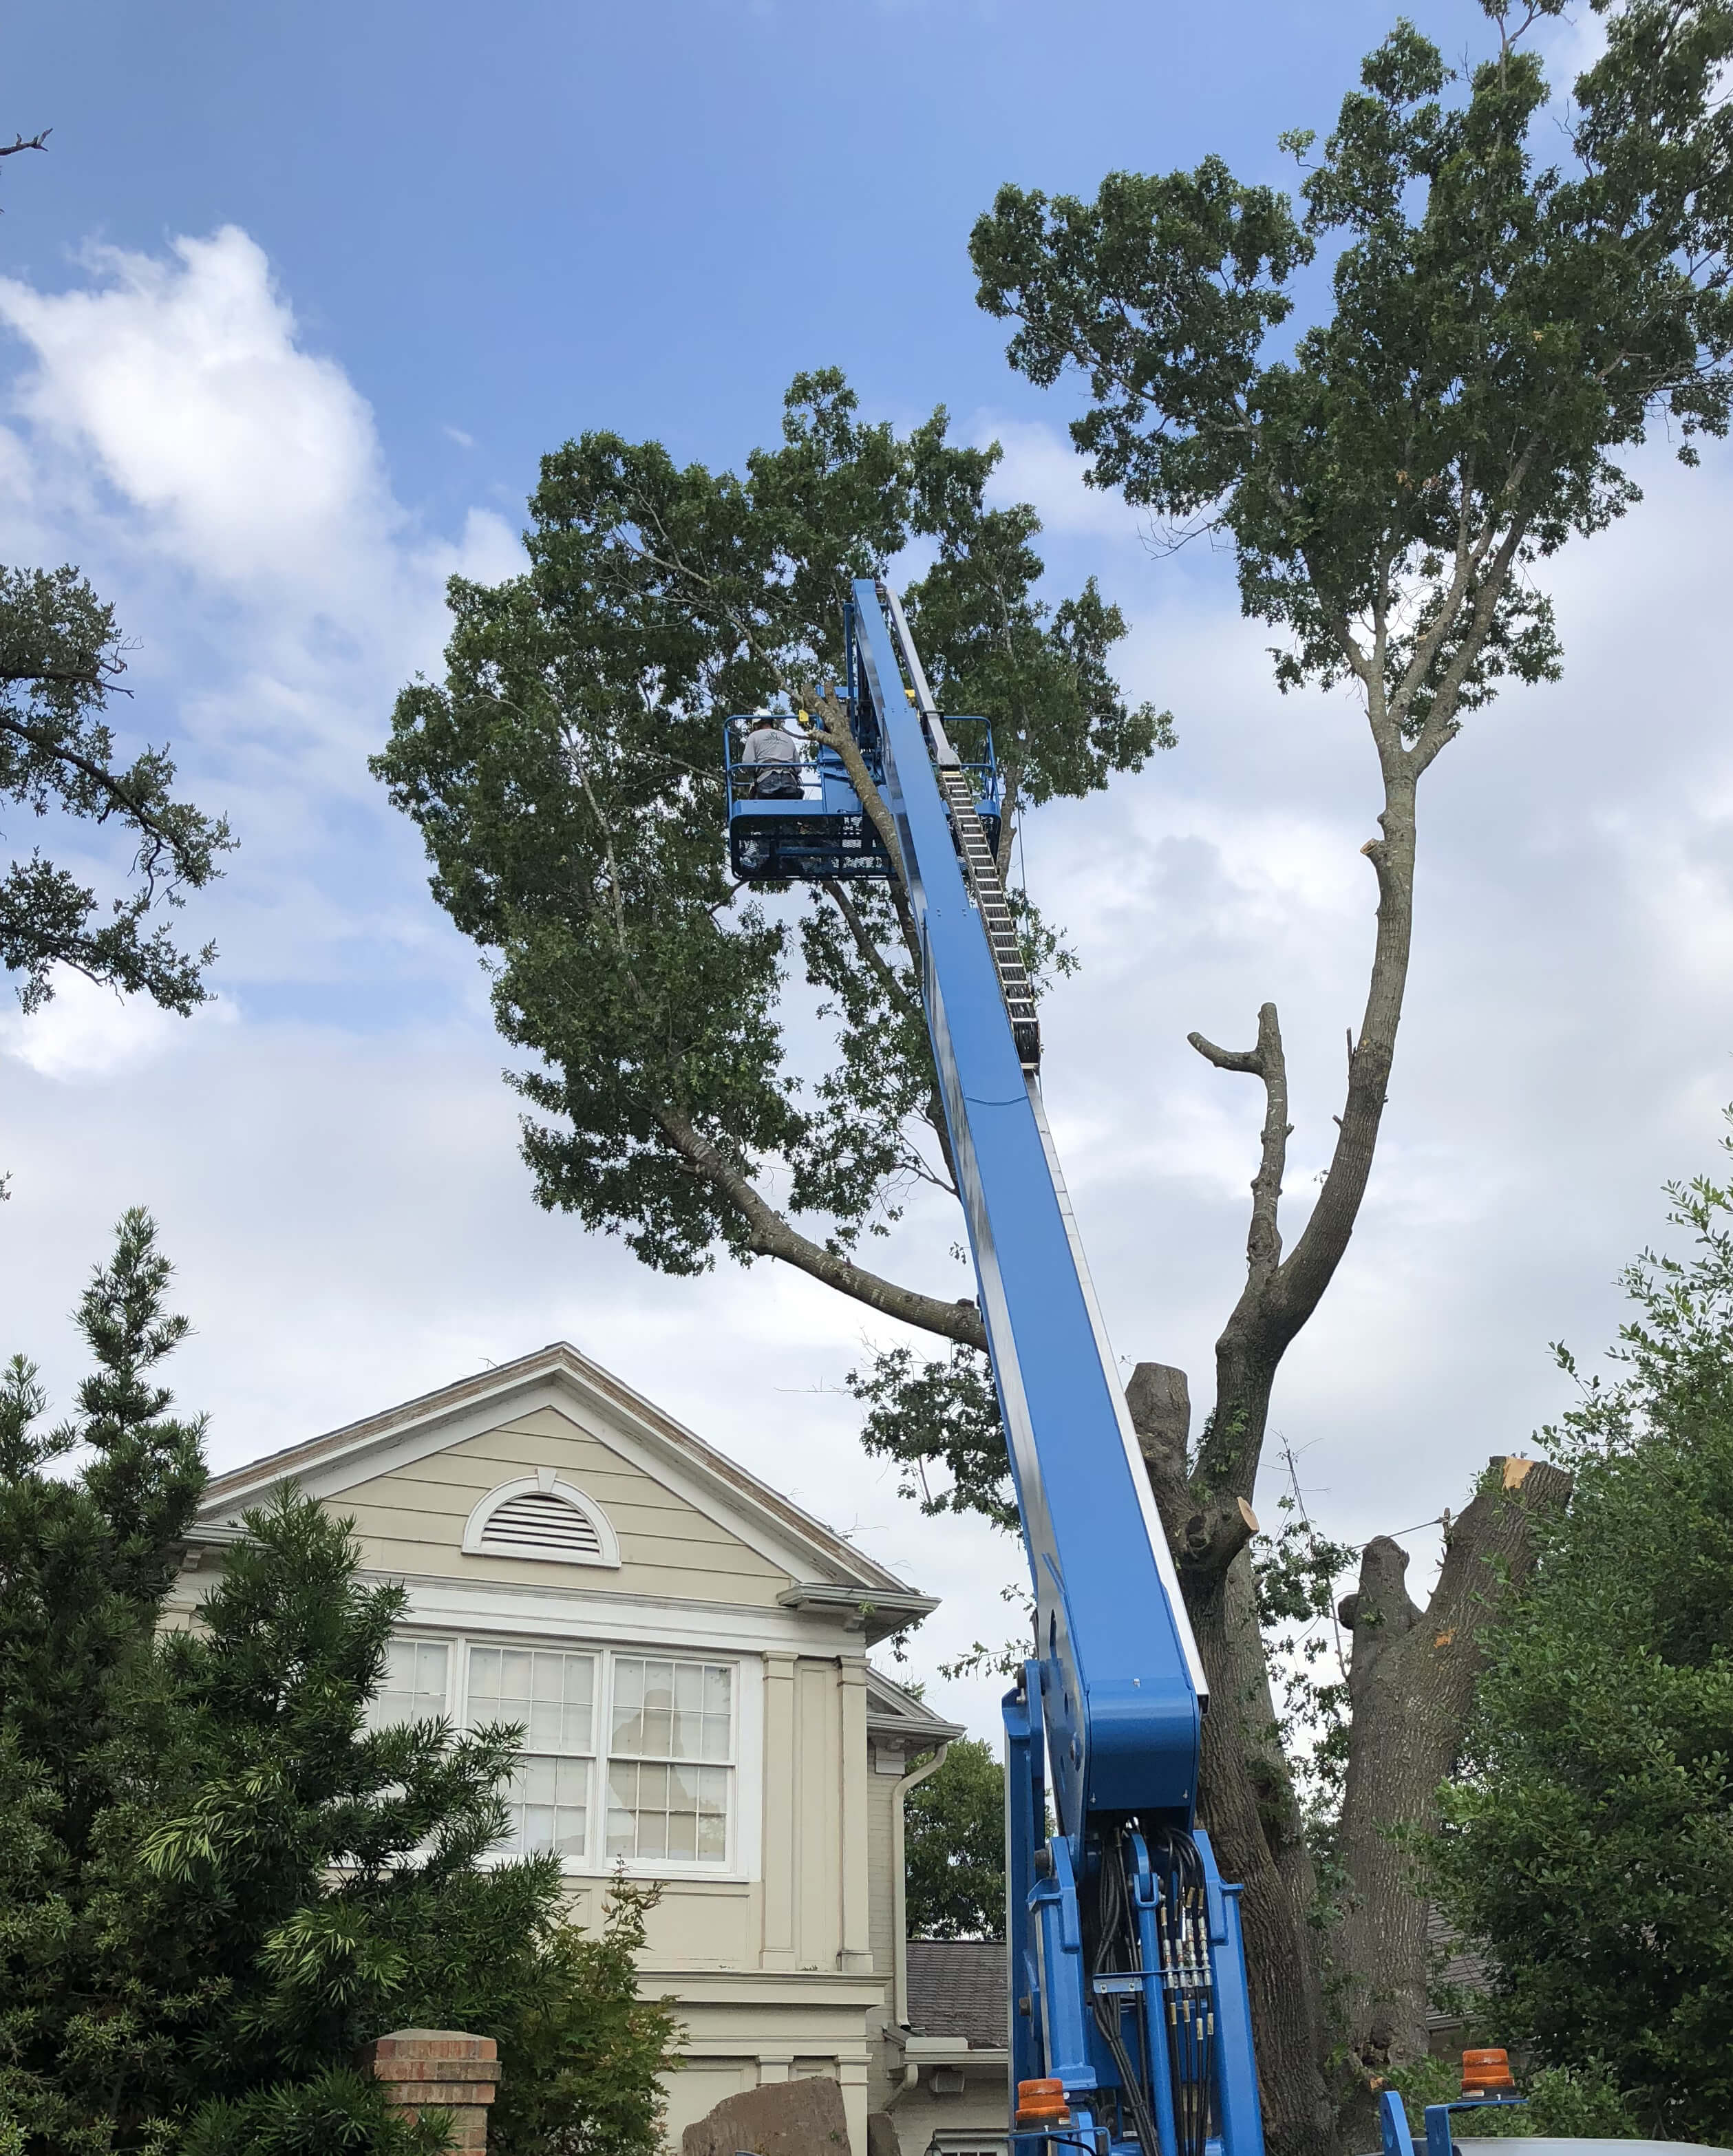 Tree trimming and tree removal services in Waco